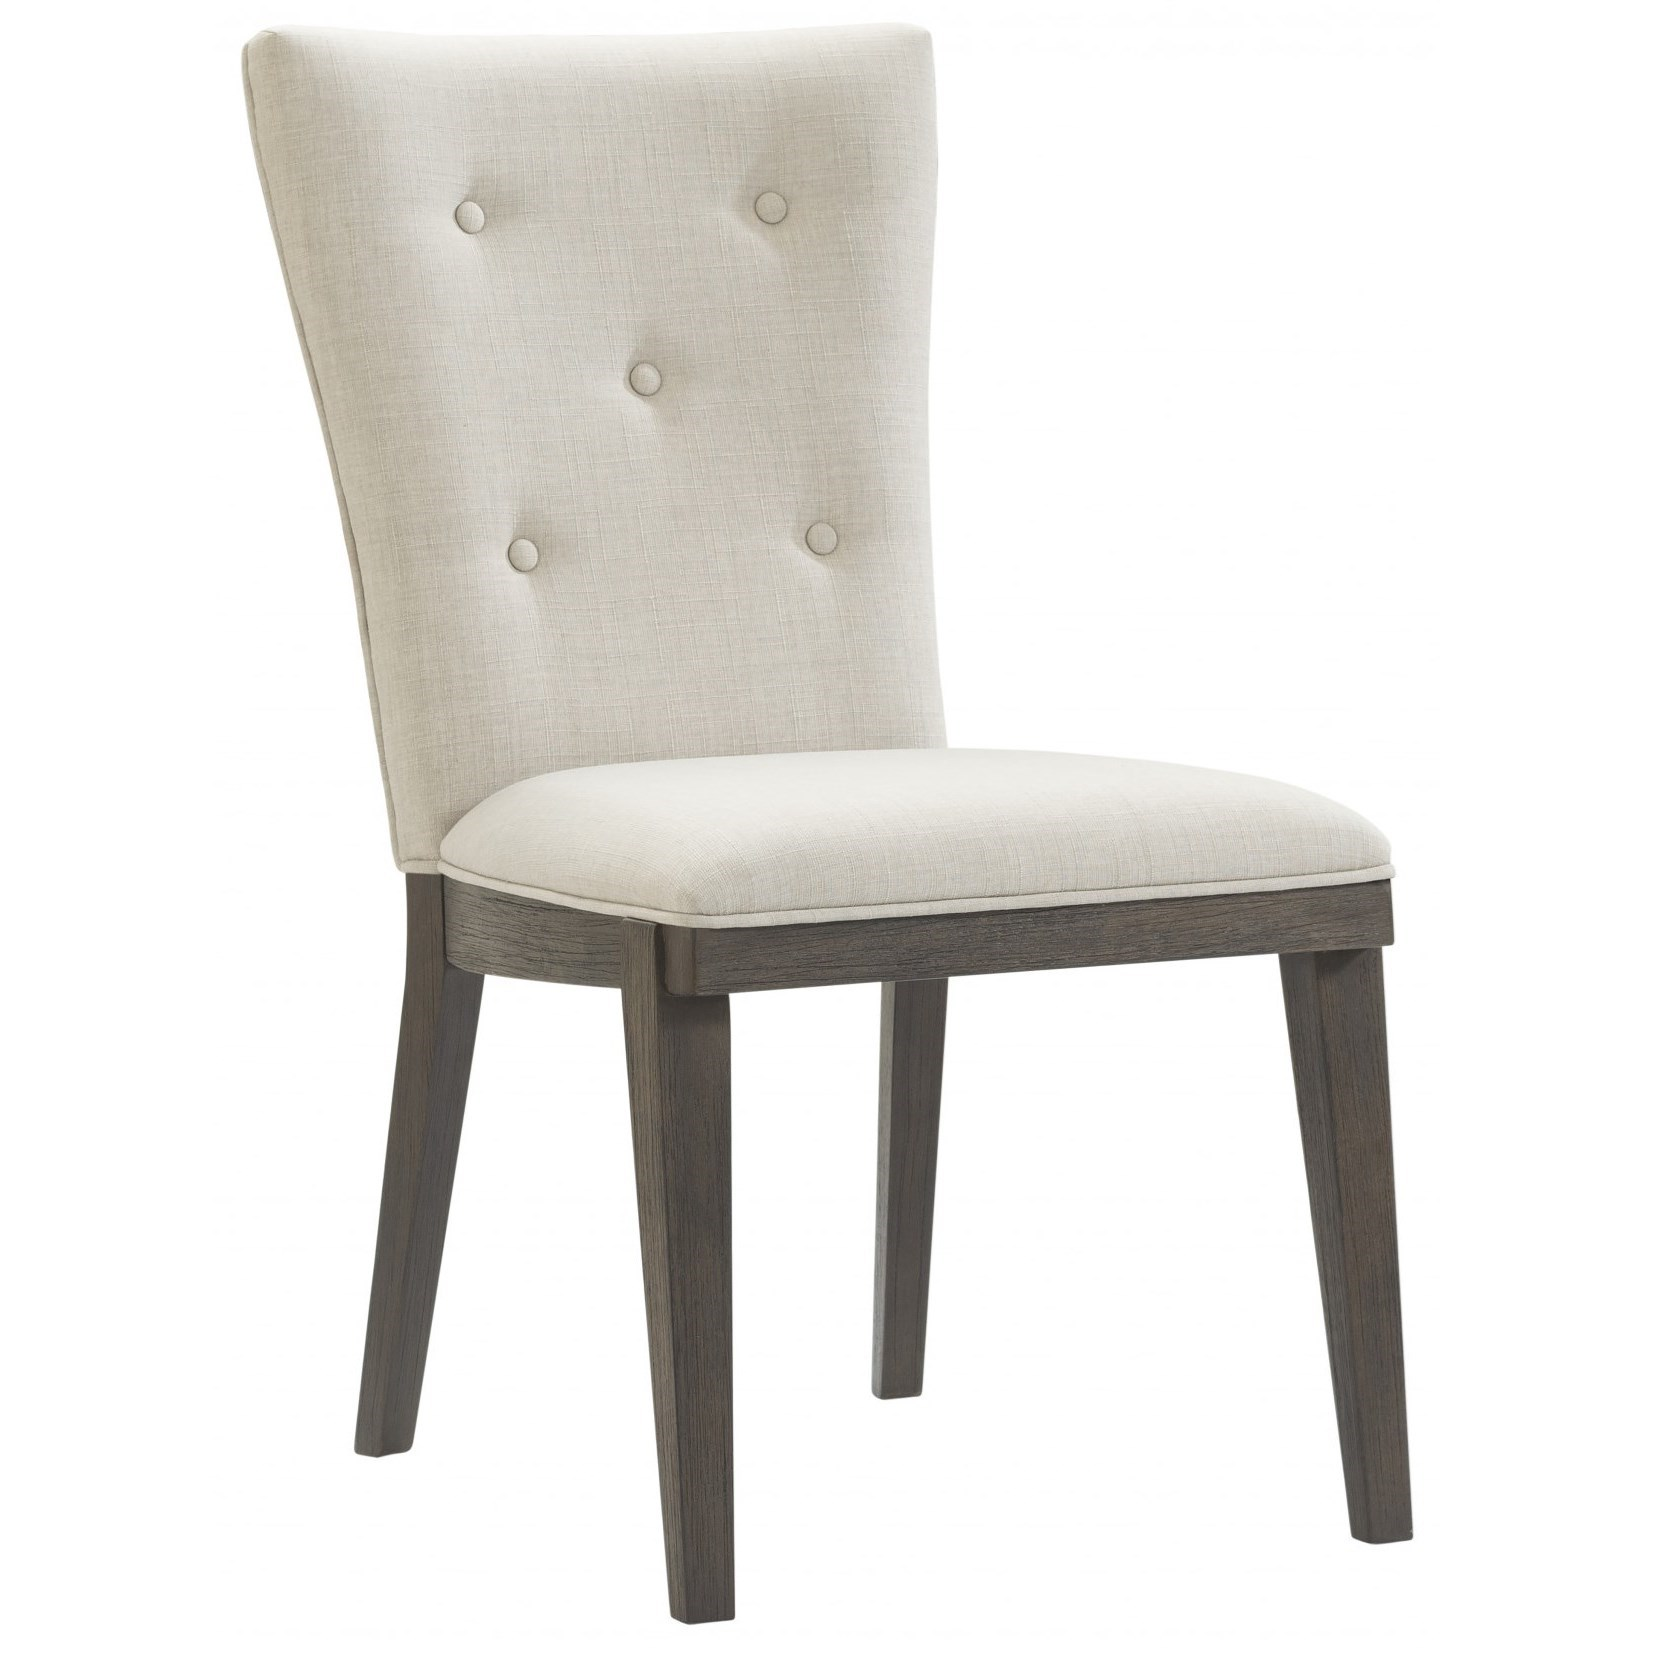 Belgian Luxe Samara Side Dining Chair by Bassett Mirror at Alison Craig Home Furnishings